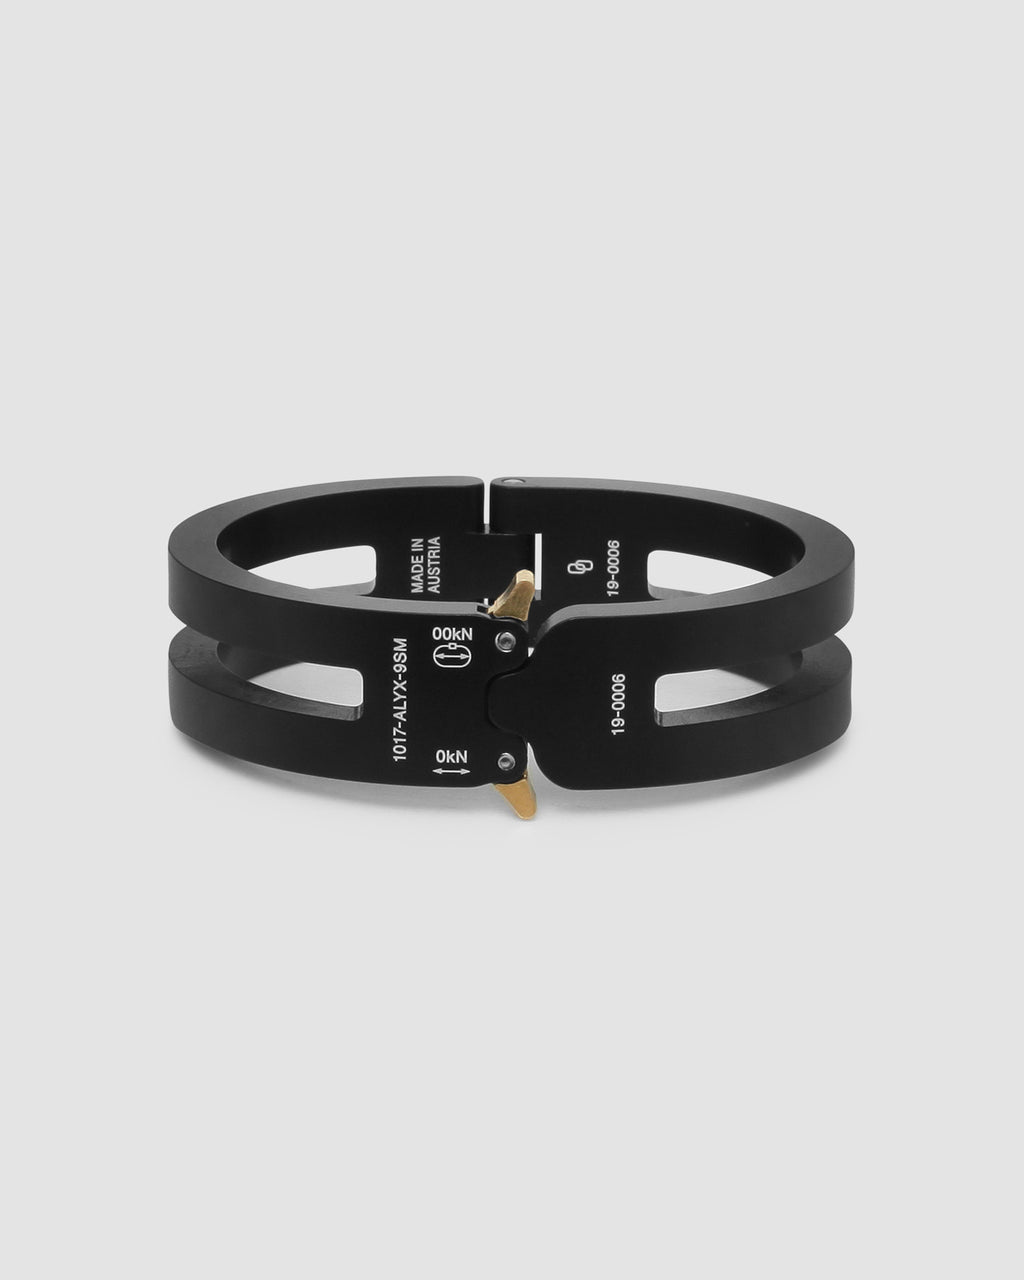 1017 ALYX 9SM | ROLLERCOASTER TRACK BRACELET | Jewellery | Accessories, Black, Google Shopping, Man, S19, S20, Woman